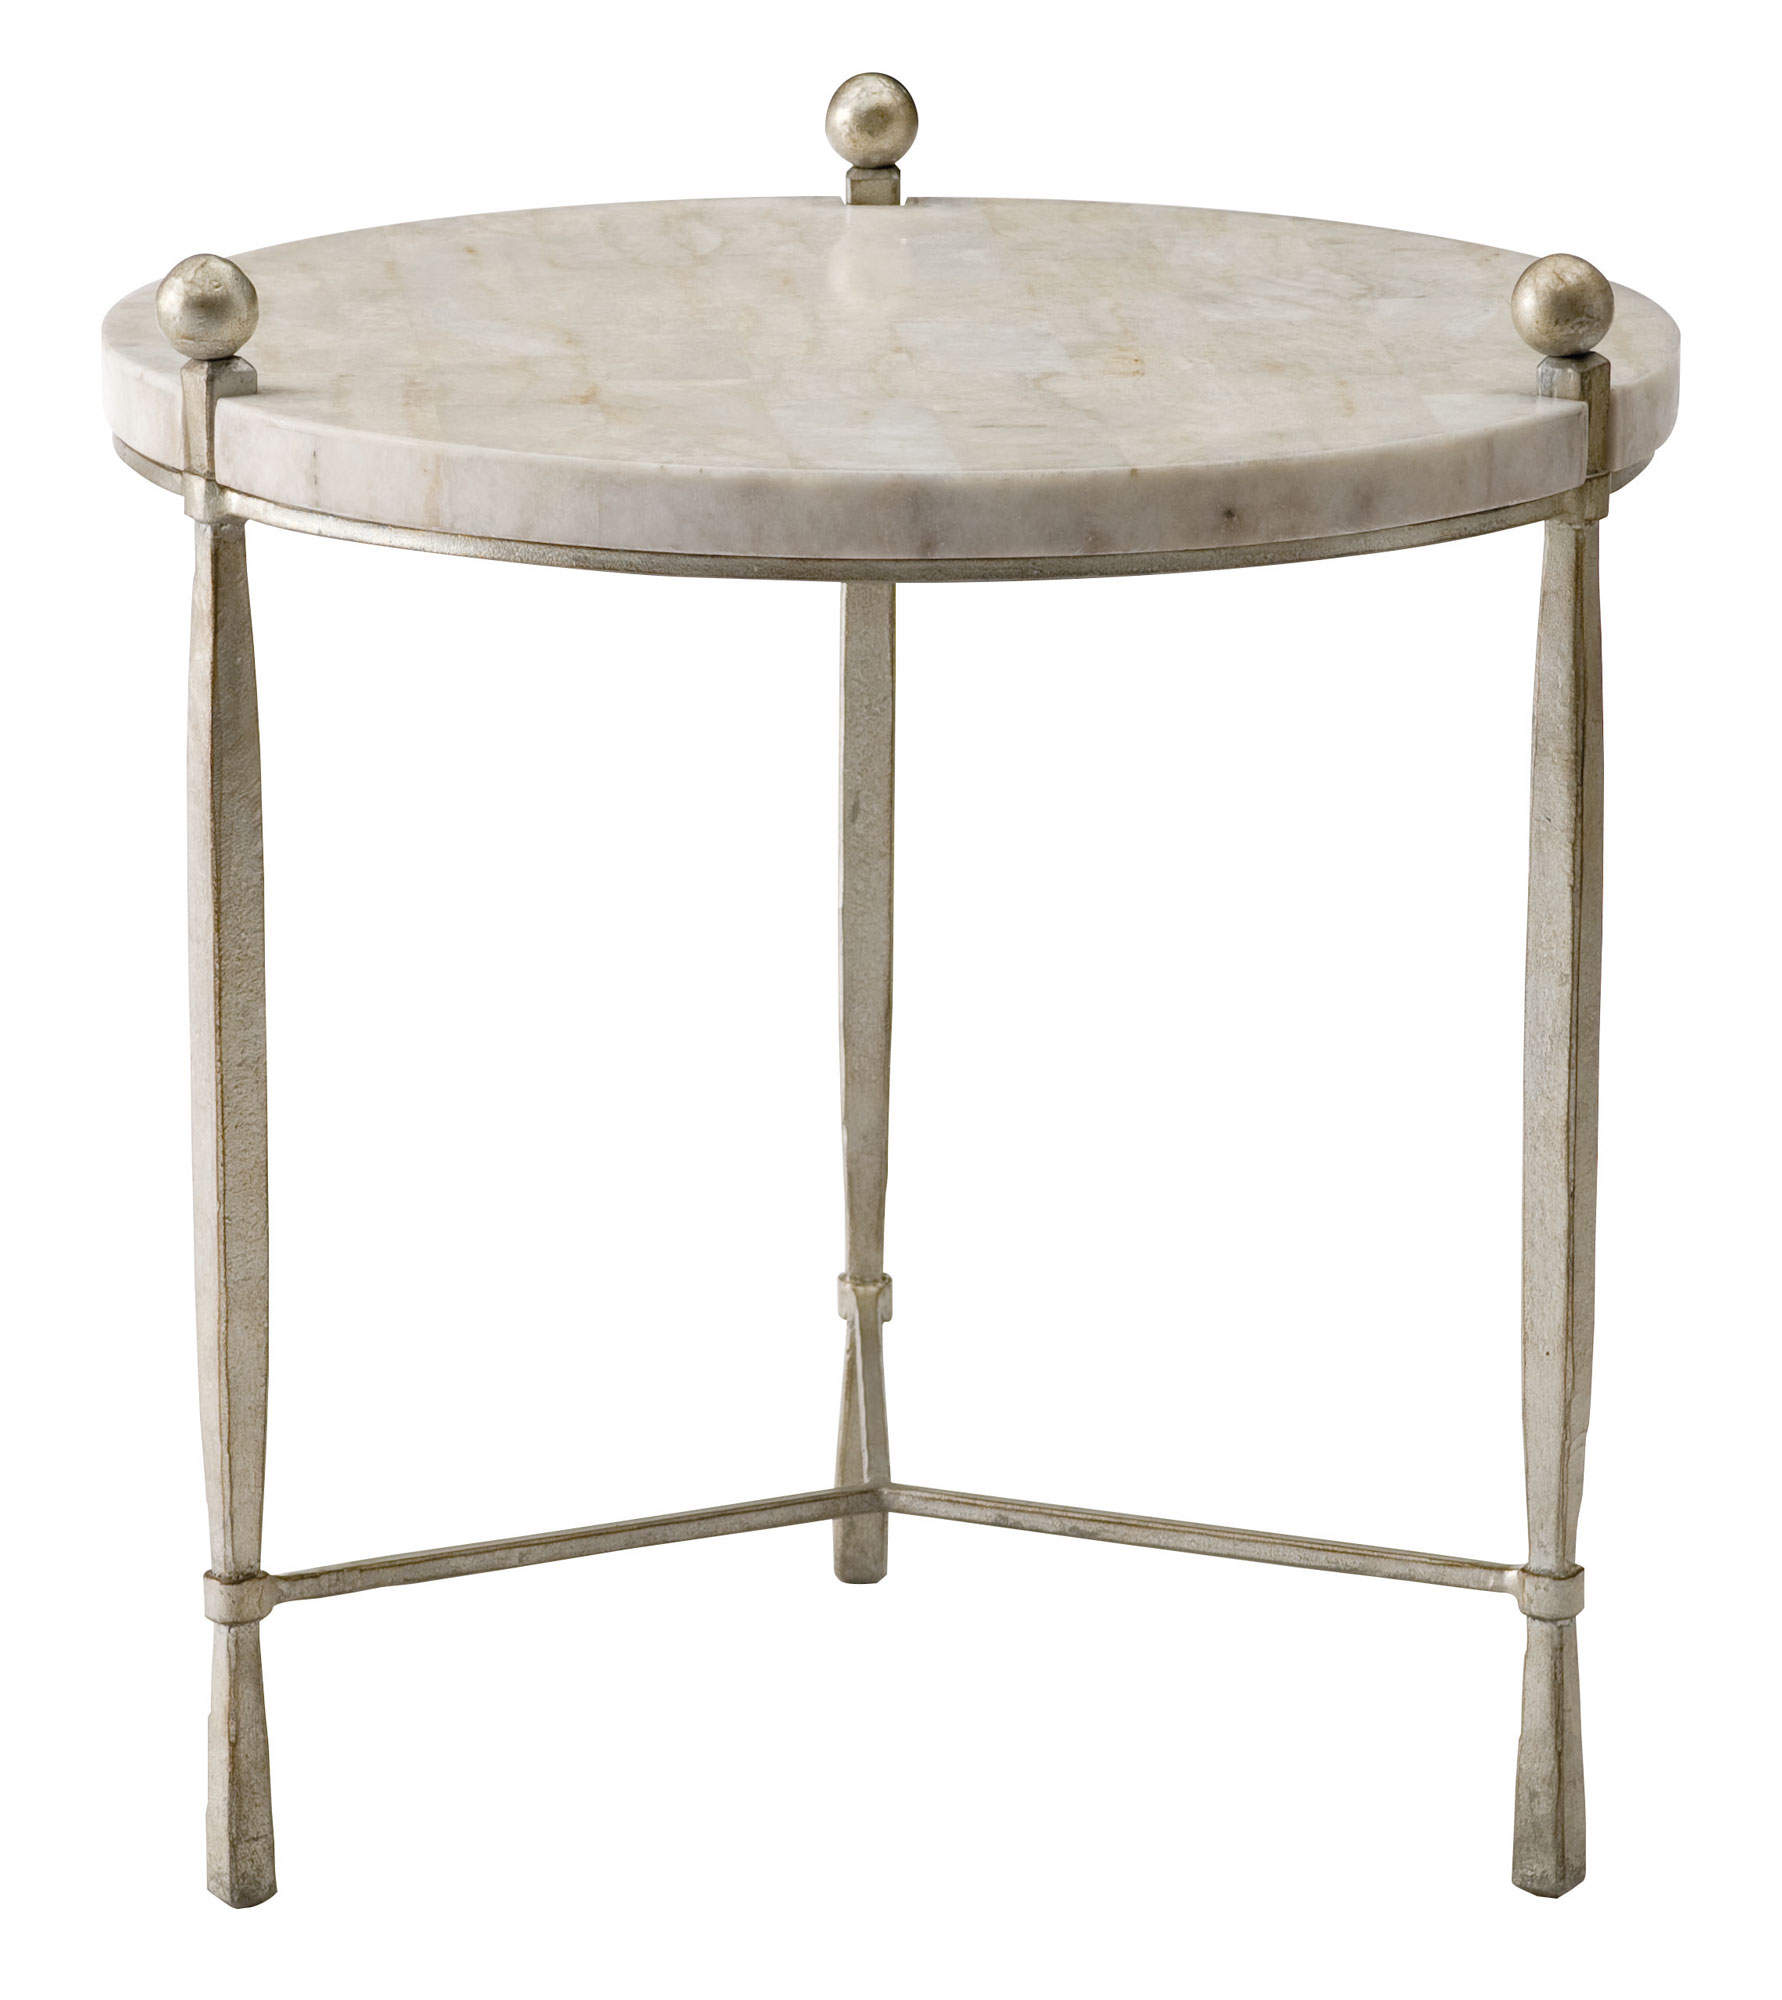 chair side tables canada rocker gaming round chairside table bernhardt